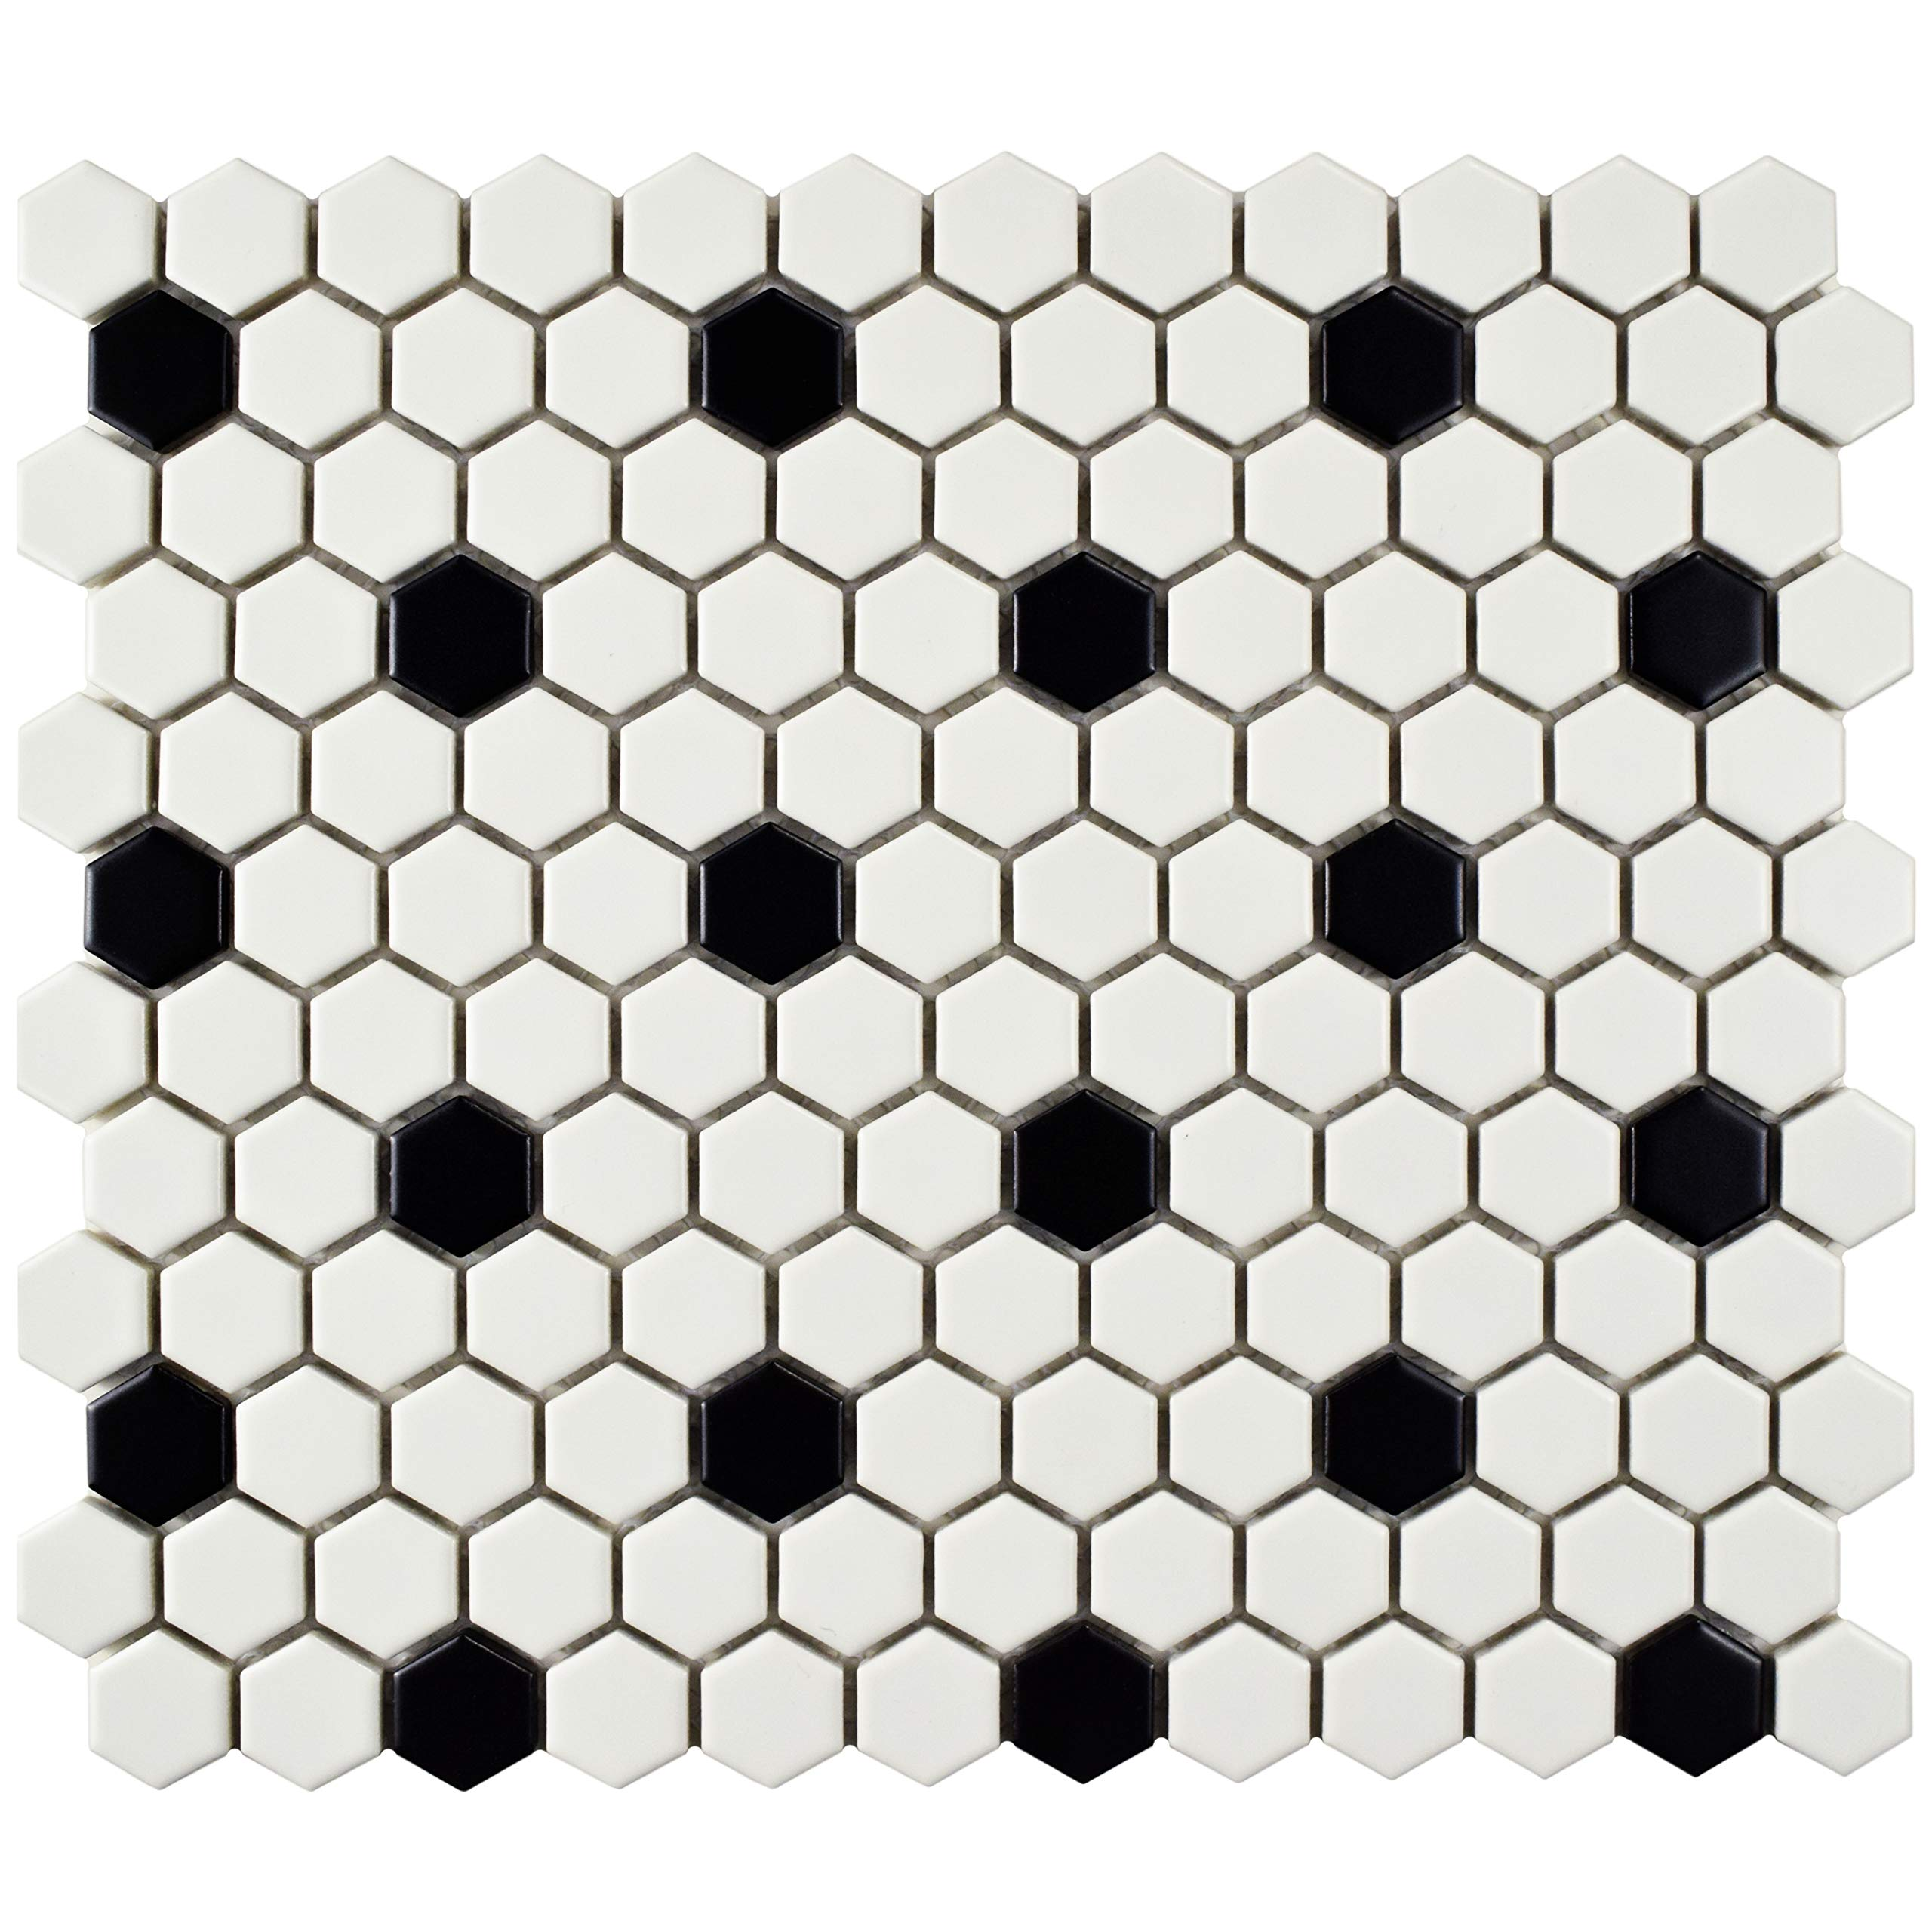 SomerTile FDXMHMWD Retro Hex Porcelain Floor and Wall Tile, 10.25'' x 11.75'', Matte White with Black Dot by SOMERTILE